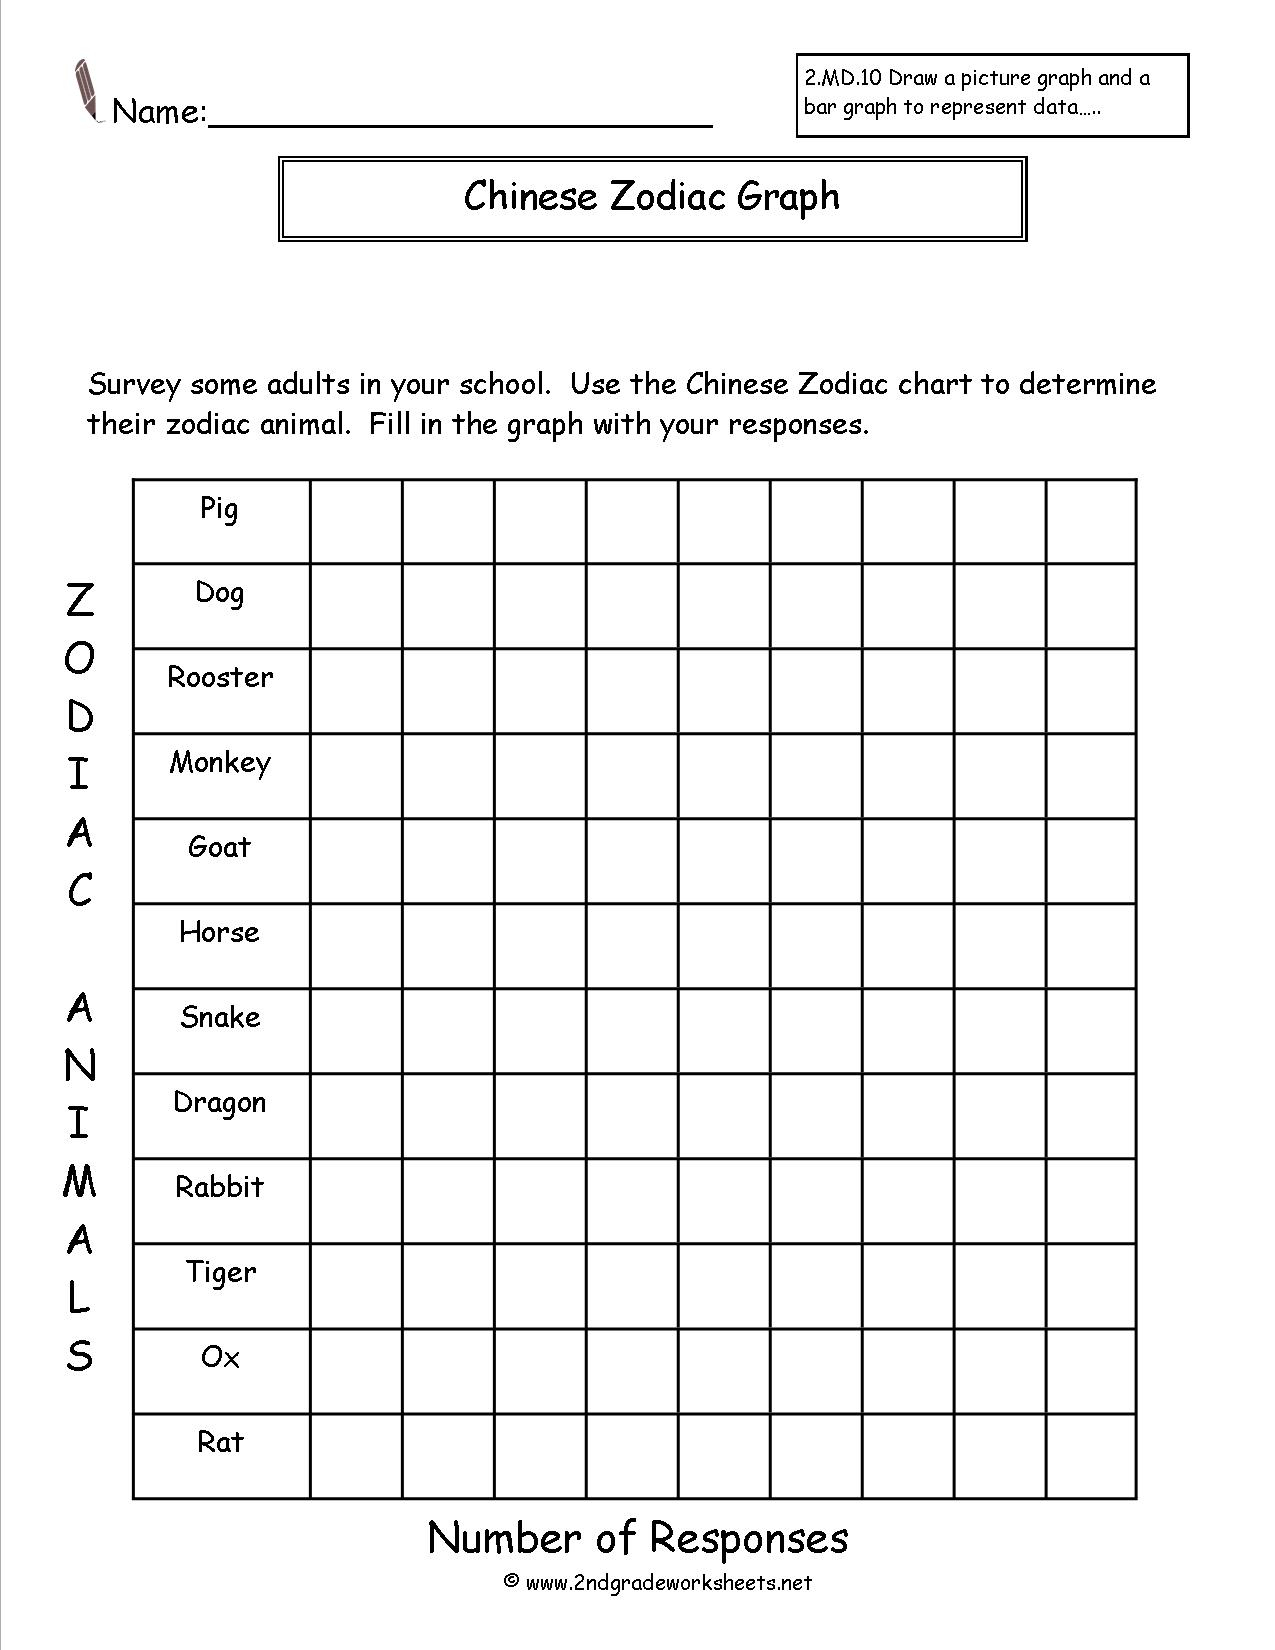 Free Reading And Creating Bar Graph Worksheets | Blank Bar Graph Printable Worksheets